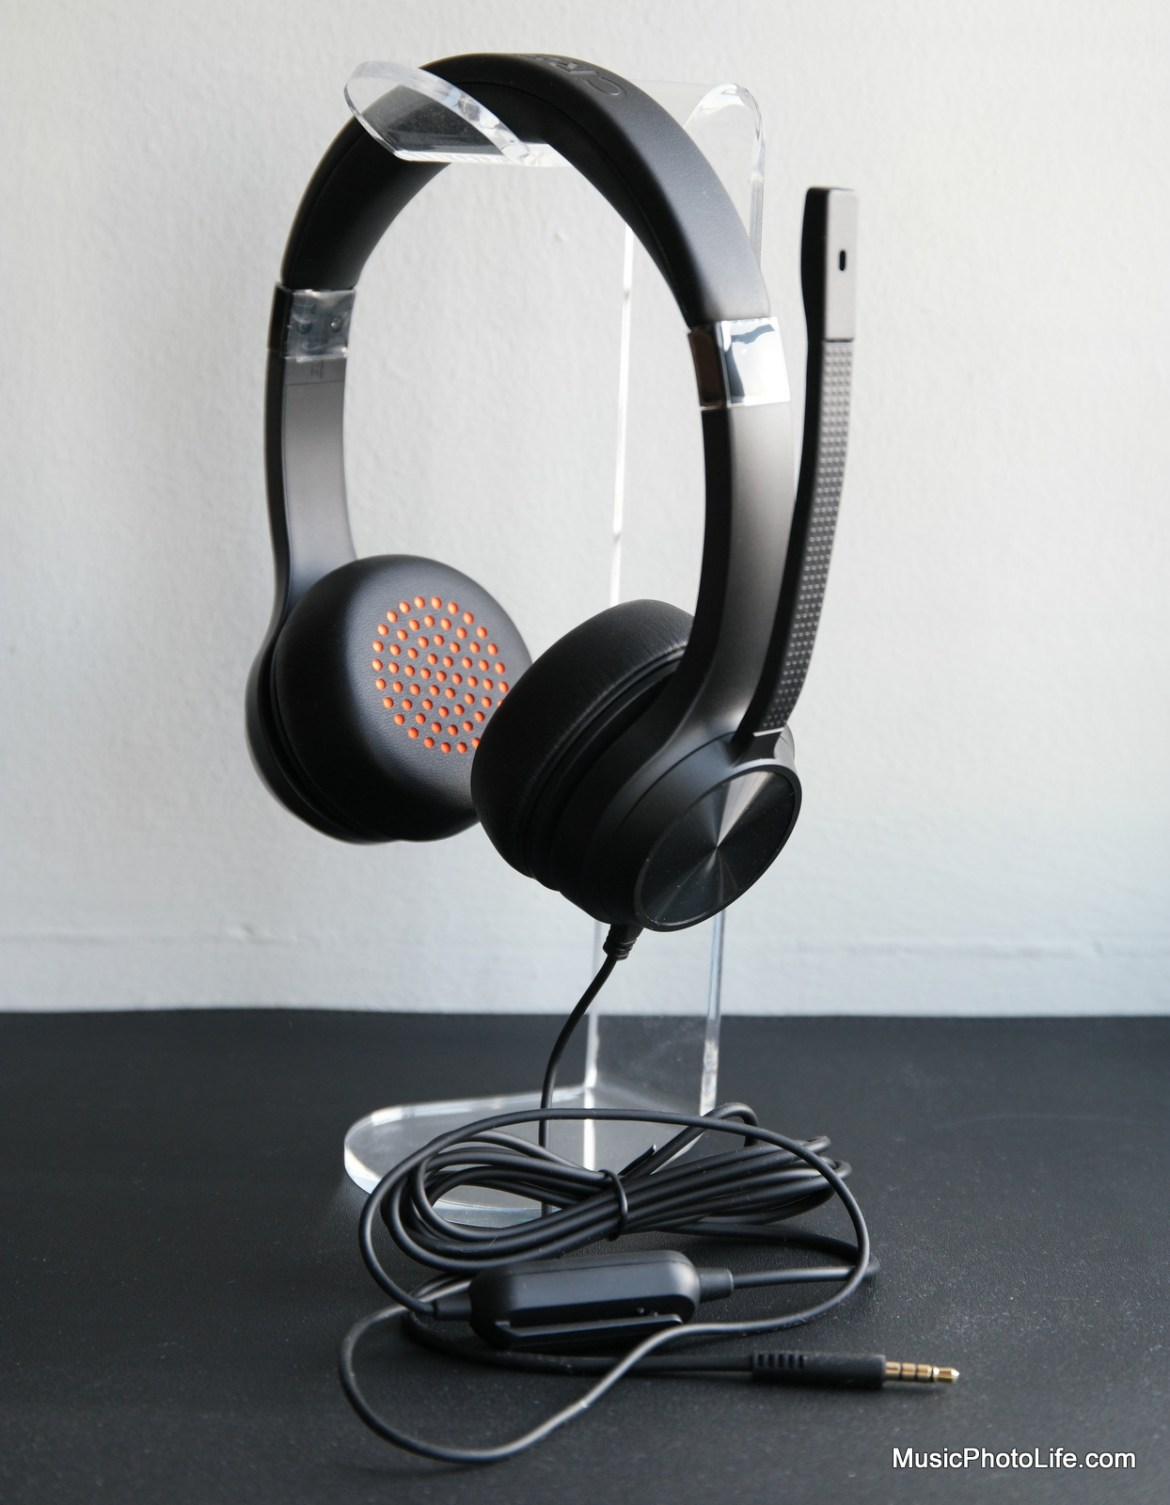 Creative Chat, 3.5mm headset review by Music Photo Life, Singapore tech blog